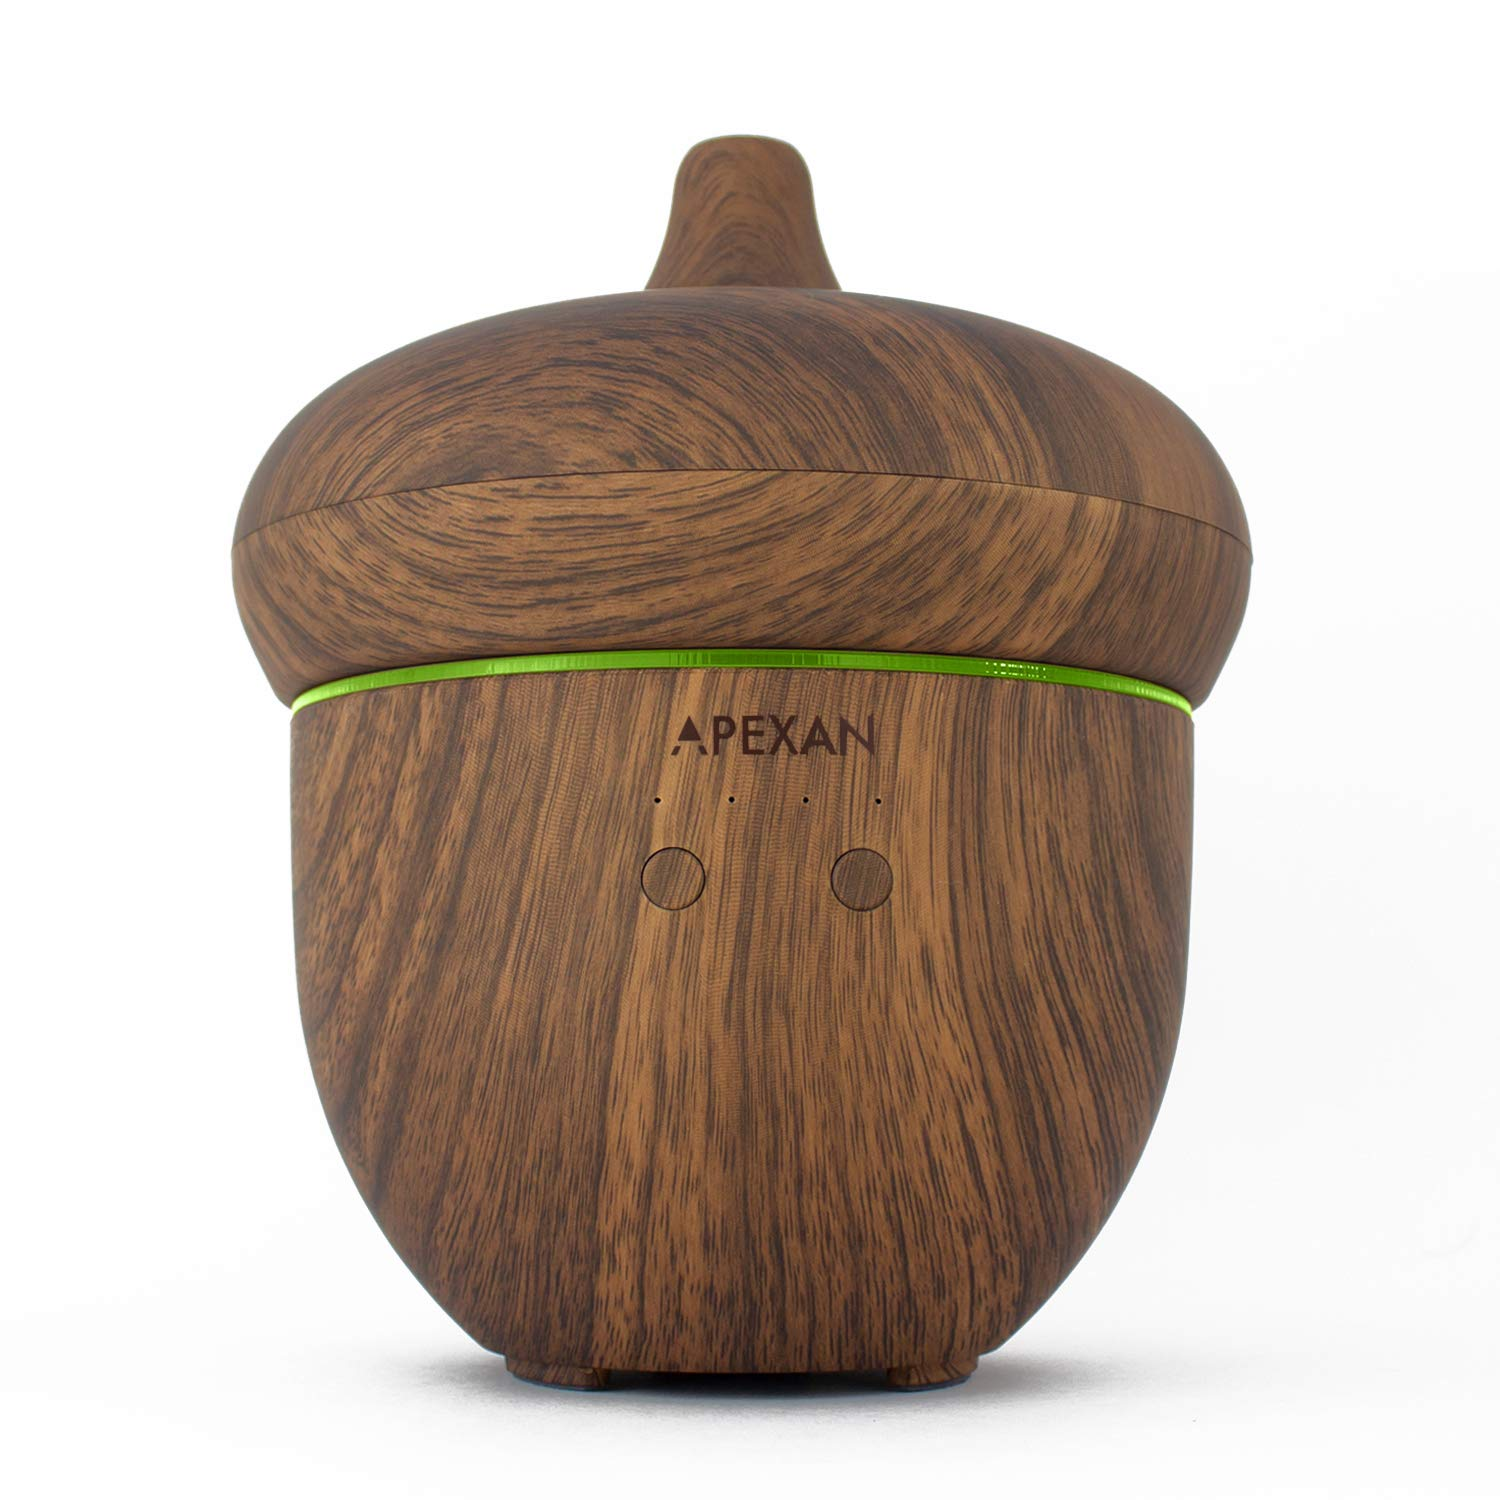 Apexan Aromatherapy Essential Oil Diffuser, 300 mL Aroma Diffuser with Cool Mist, Super-Quiet Humidifier, Air Purifier, with Timer & Soothing Light for Home, Bedroom, Office, Spa, Hotel (Dark Wooden Grain)